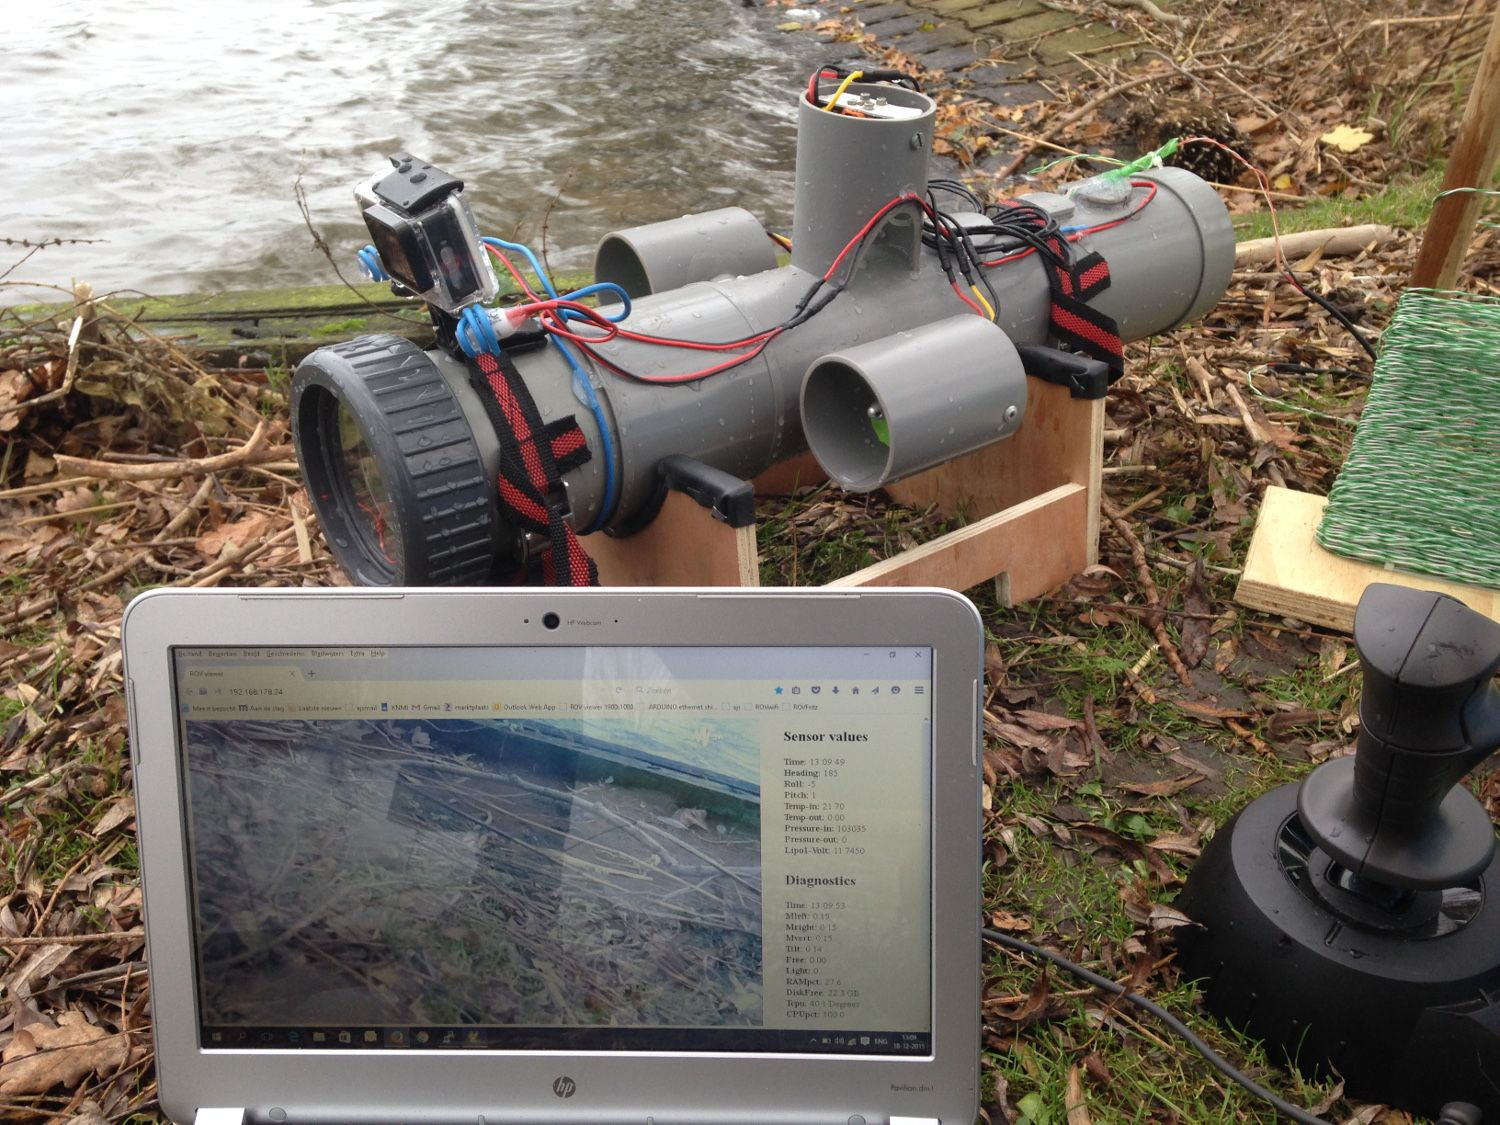 Submersible drone, powered by Pi — The MagPi magazine